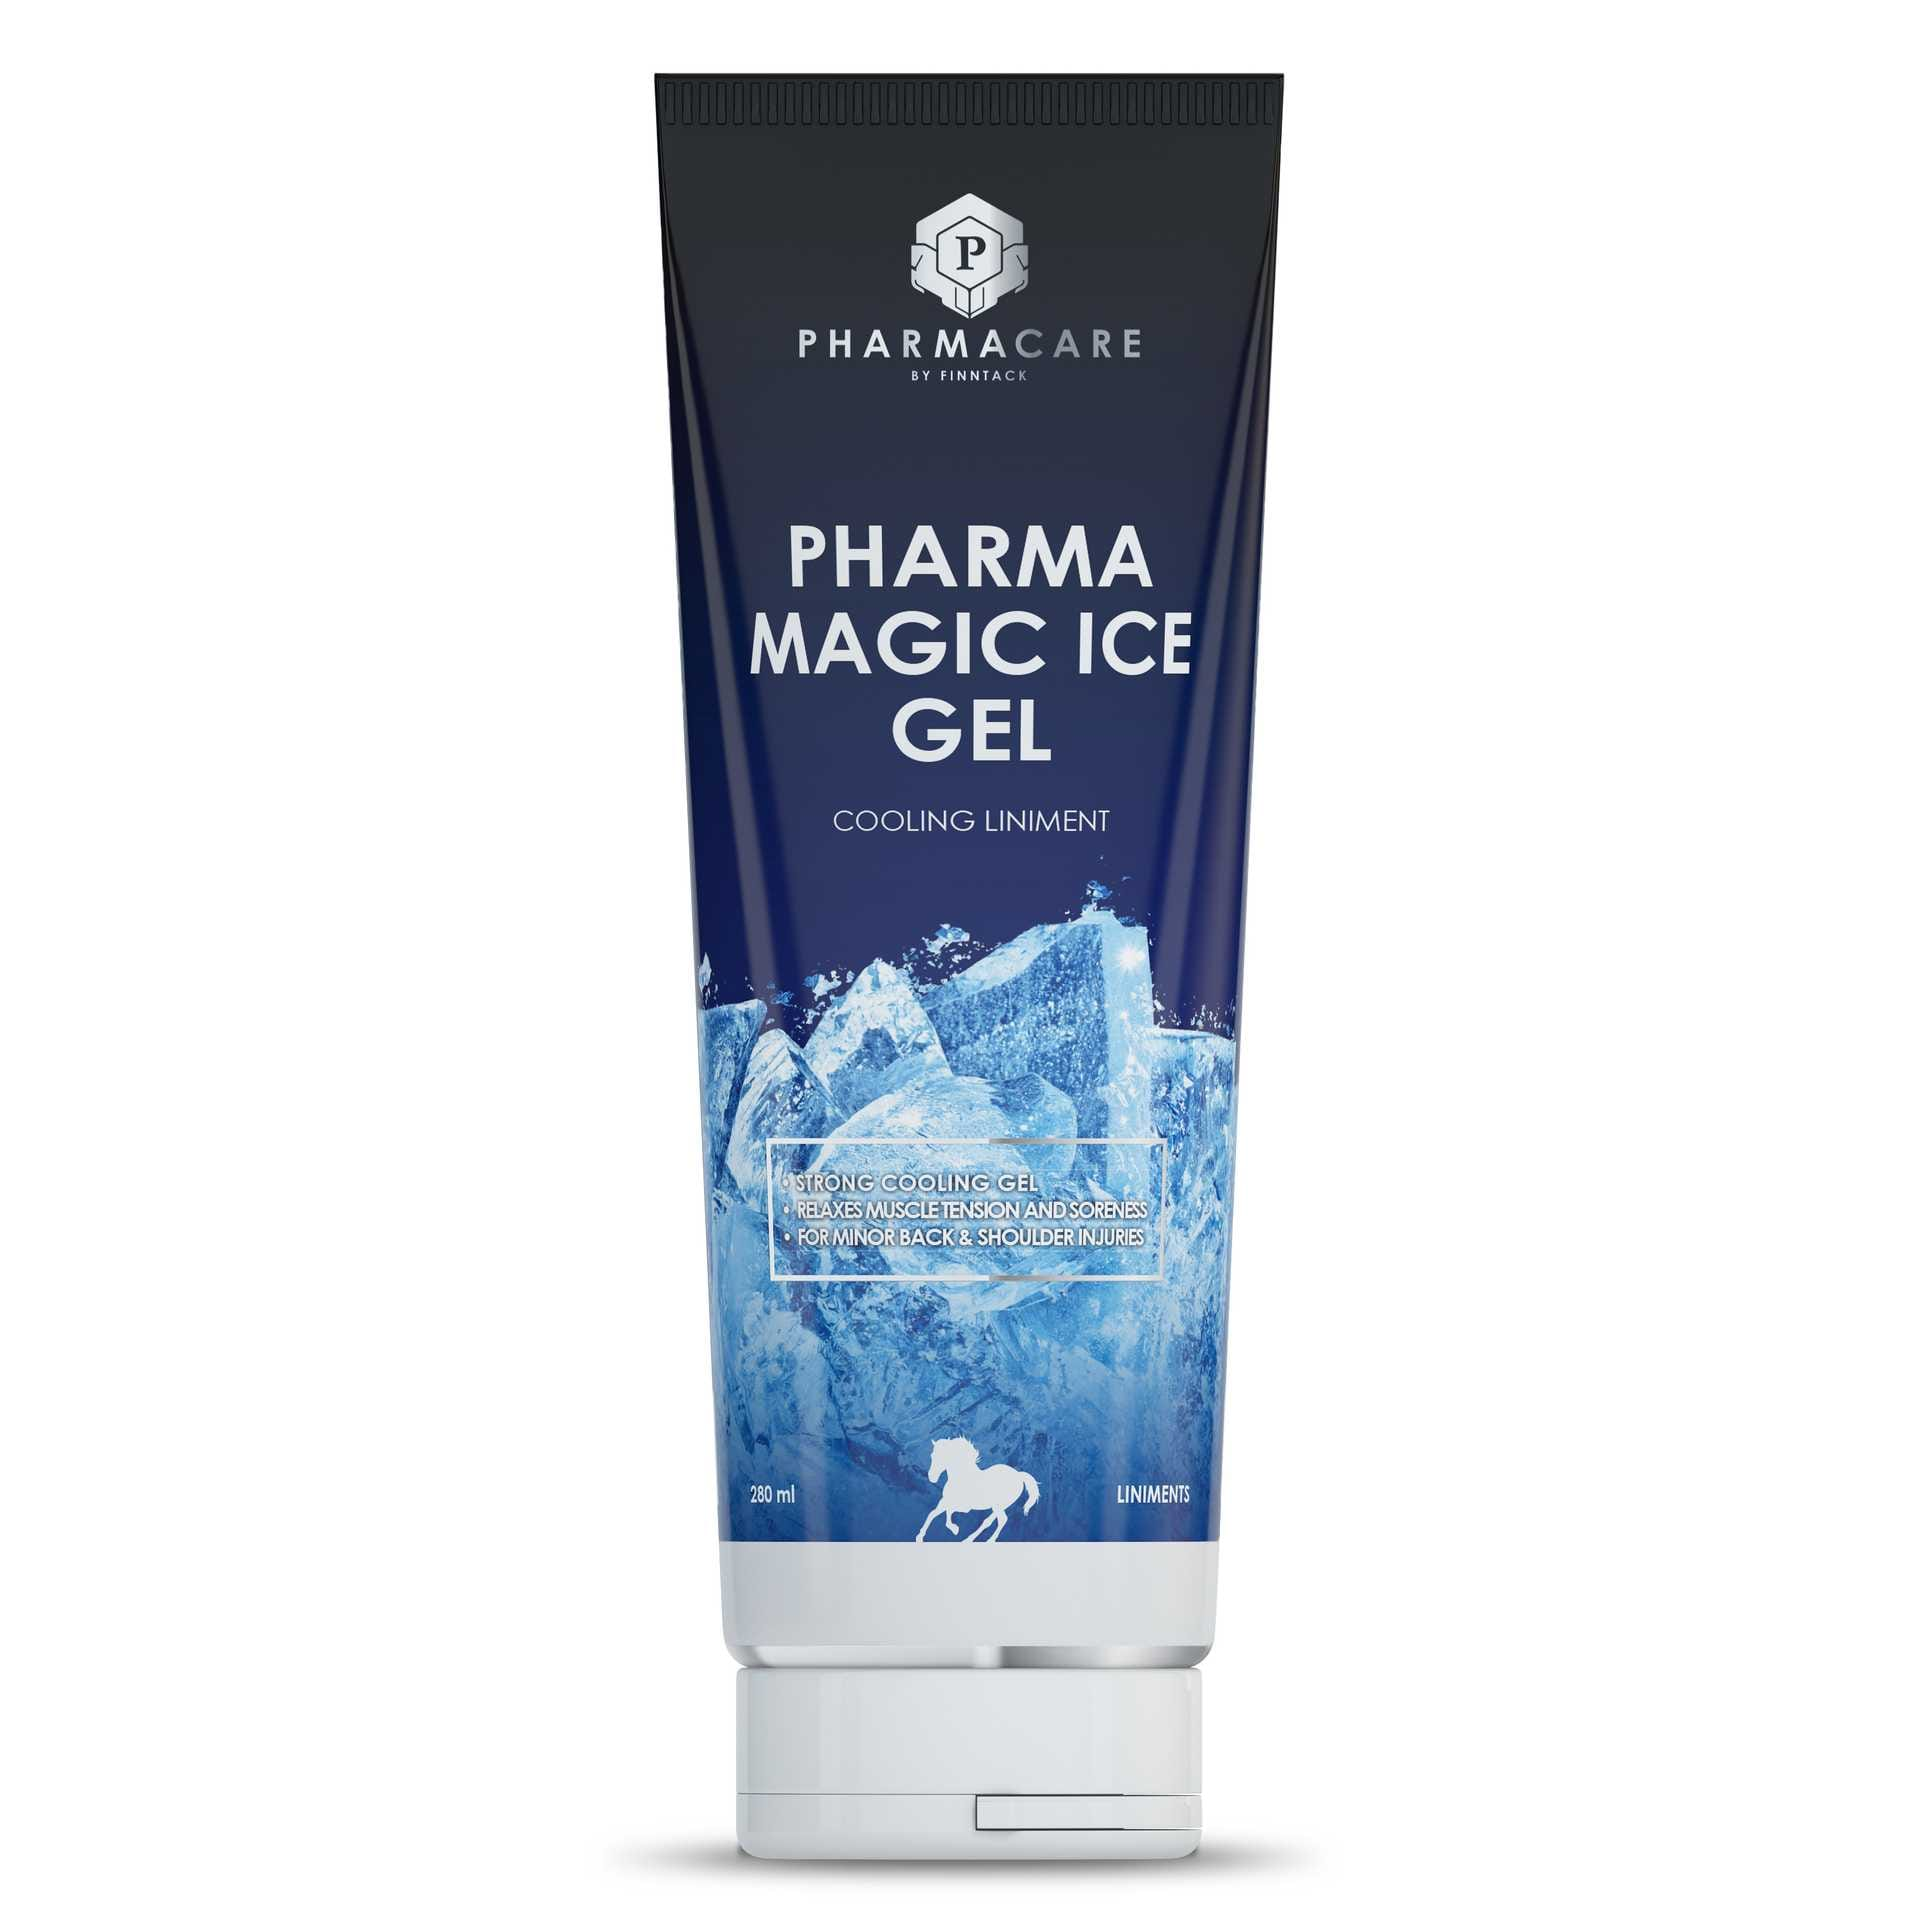 Pharma Magic Ice kylmägeeli, 280 ml